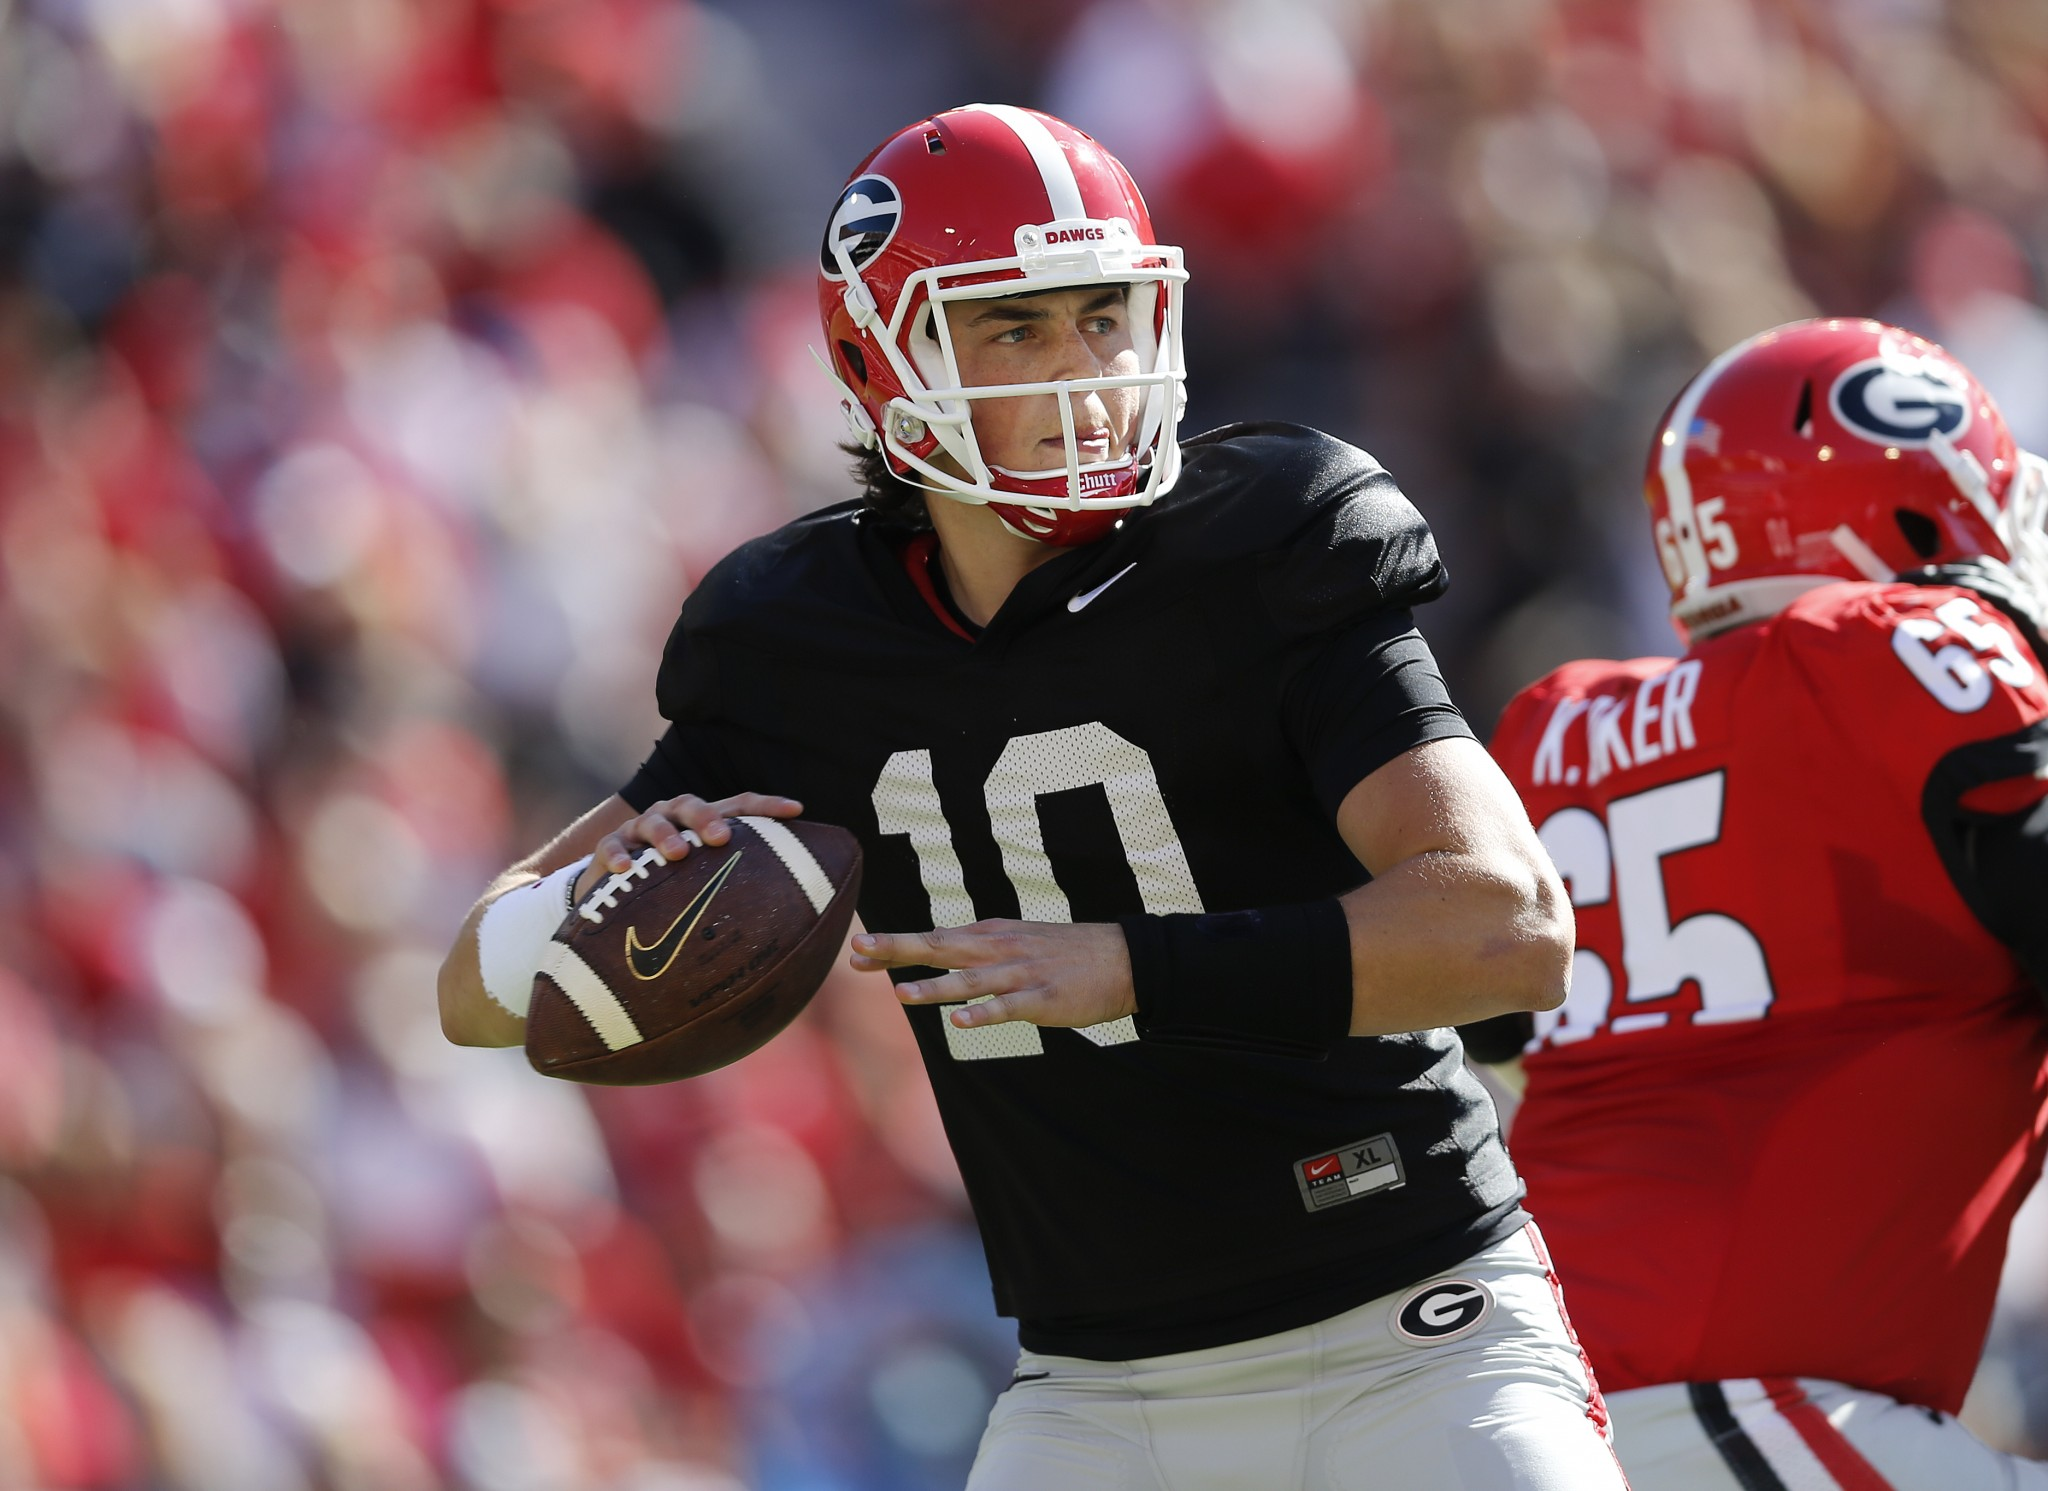 In this April 16, 2016, file photo, Georgia quarterback Jacob Eason throws during the first half of their spring intrasquad NCAA college football game in Athens, Ga. Freshman Jacob Eason, the biggest prize in Kirby Smart's first recruiting class, should eventually take over at quarterback. (AP Photo/John Bazemore, File)